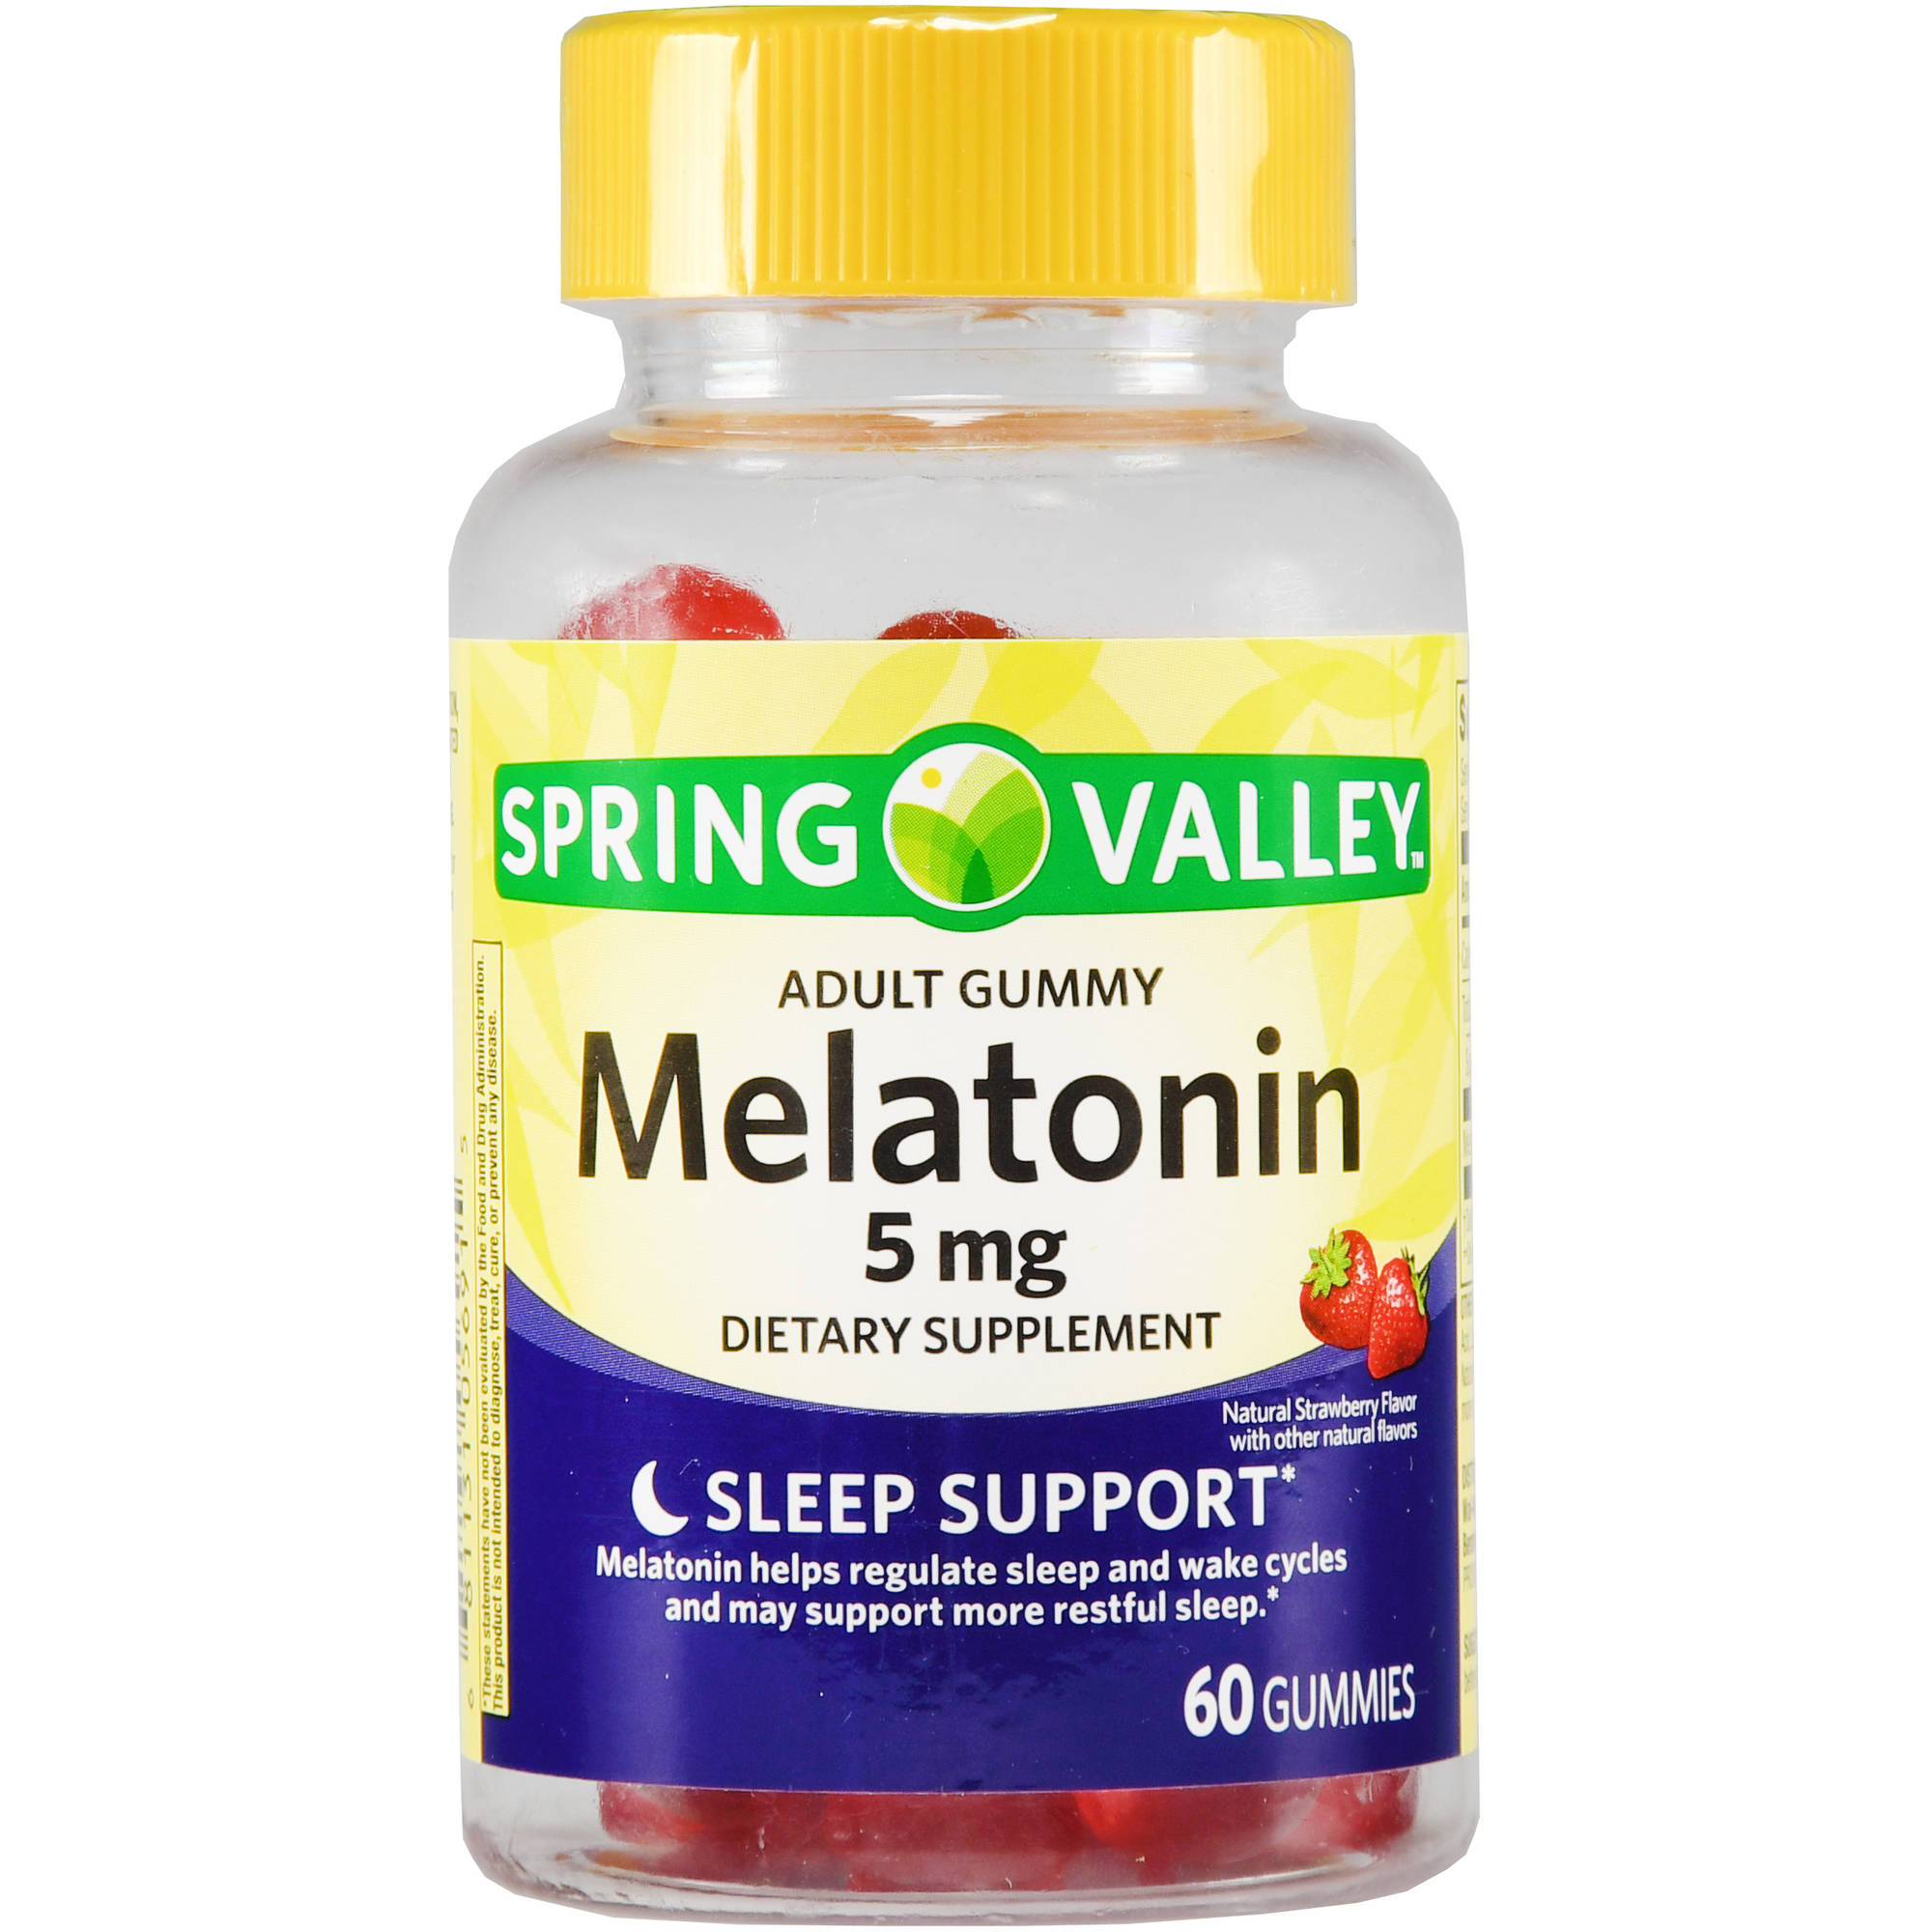 Spring Valley Adult Gummy Melatonin, 5mg, 60 count